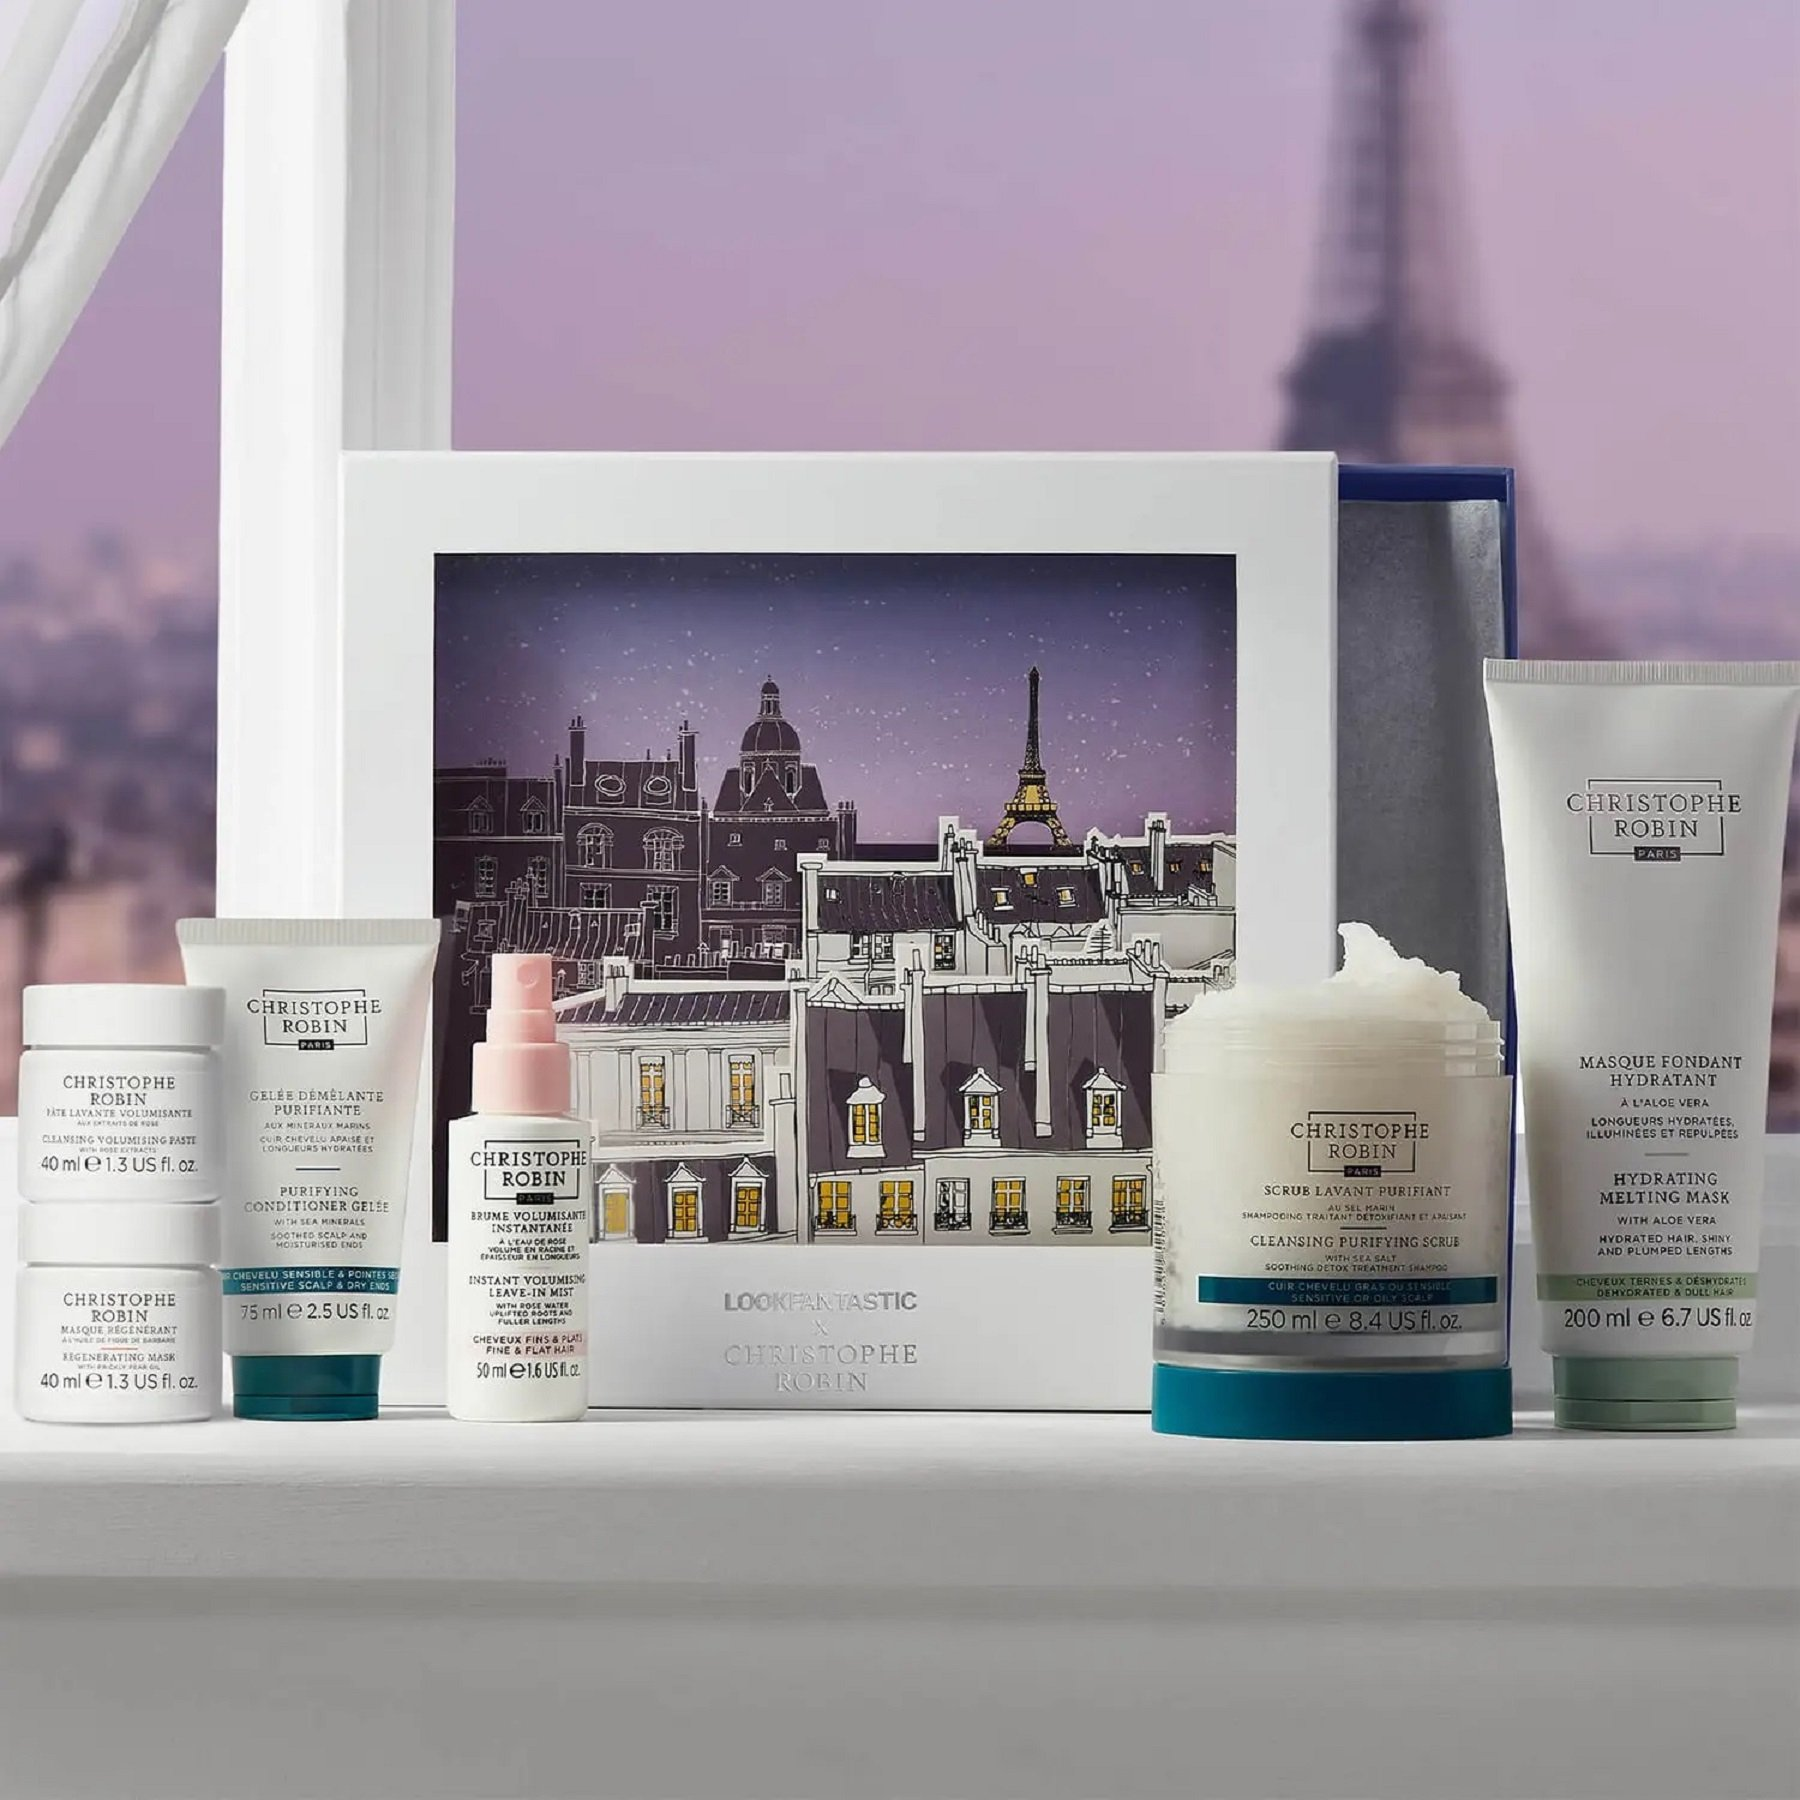 Discover LOOKFANTASTIC X Christophe Robin Limited Edition Beauty Box